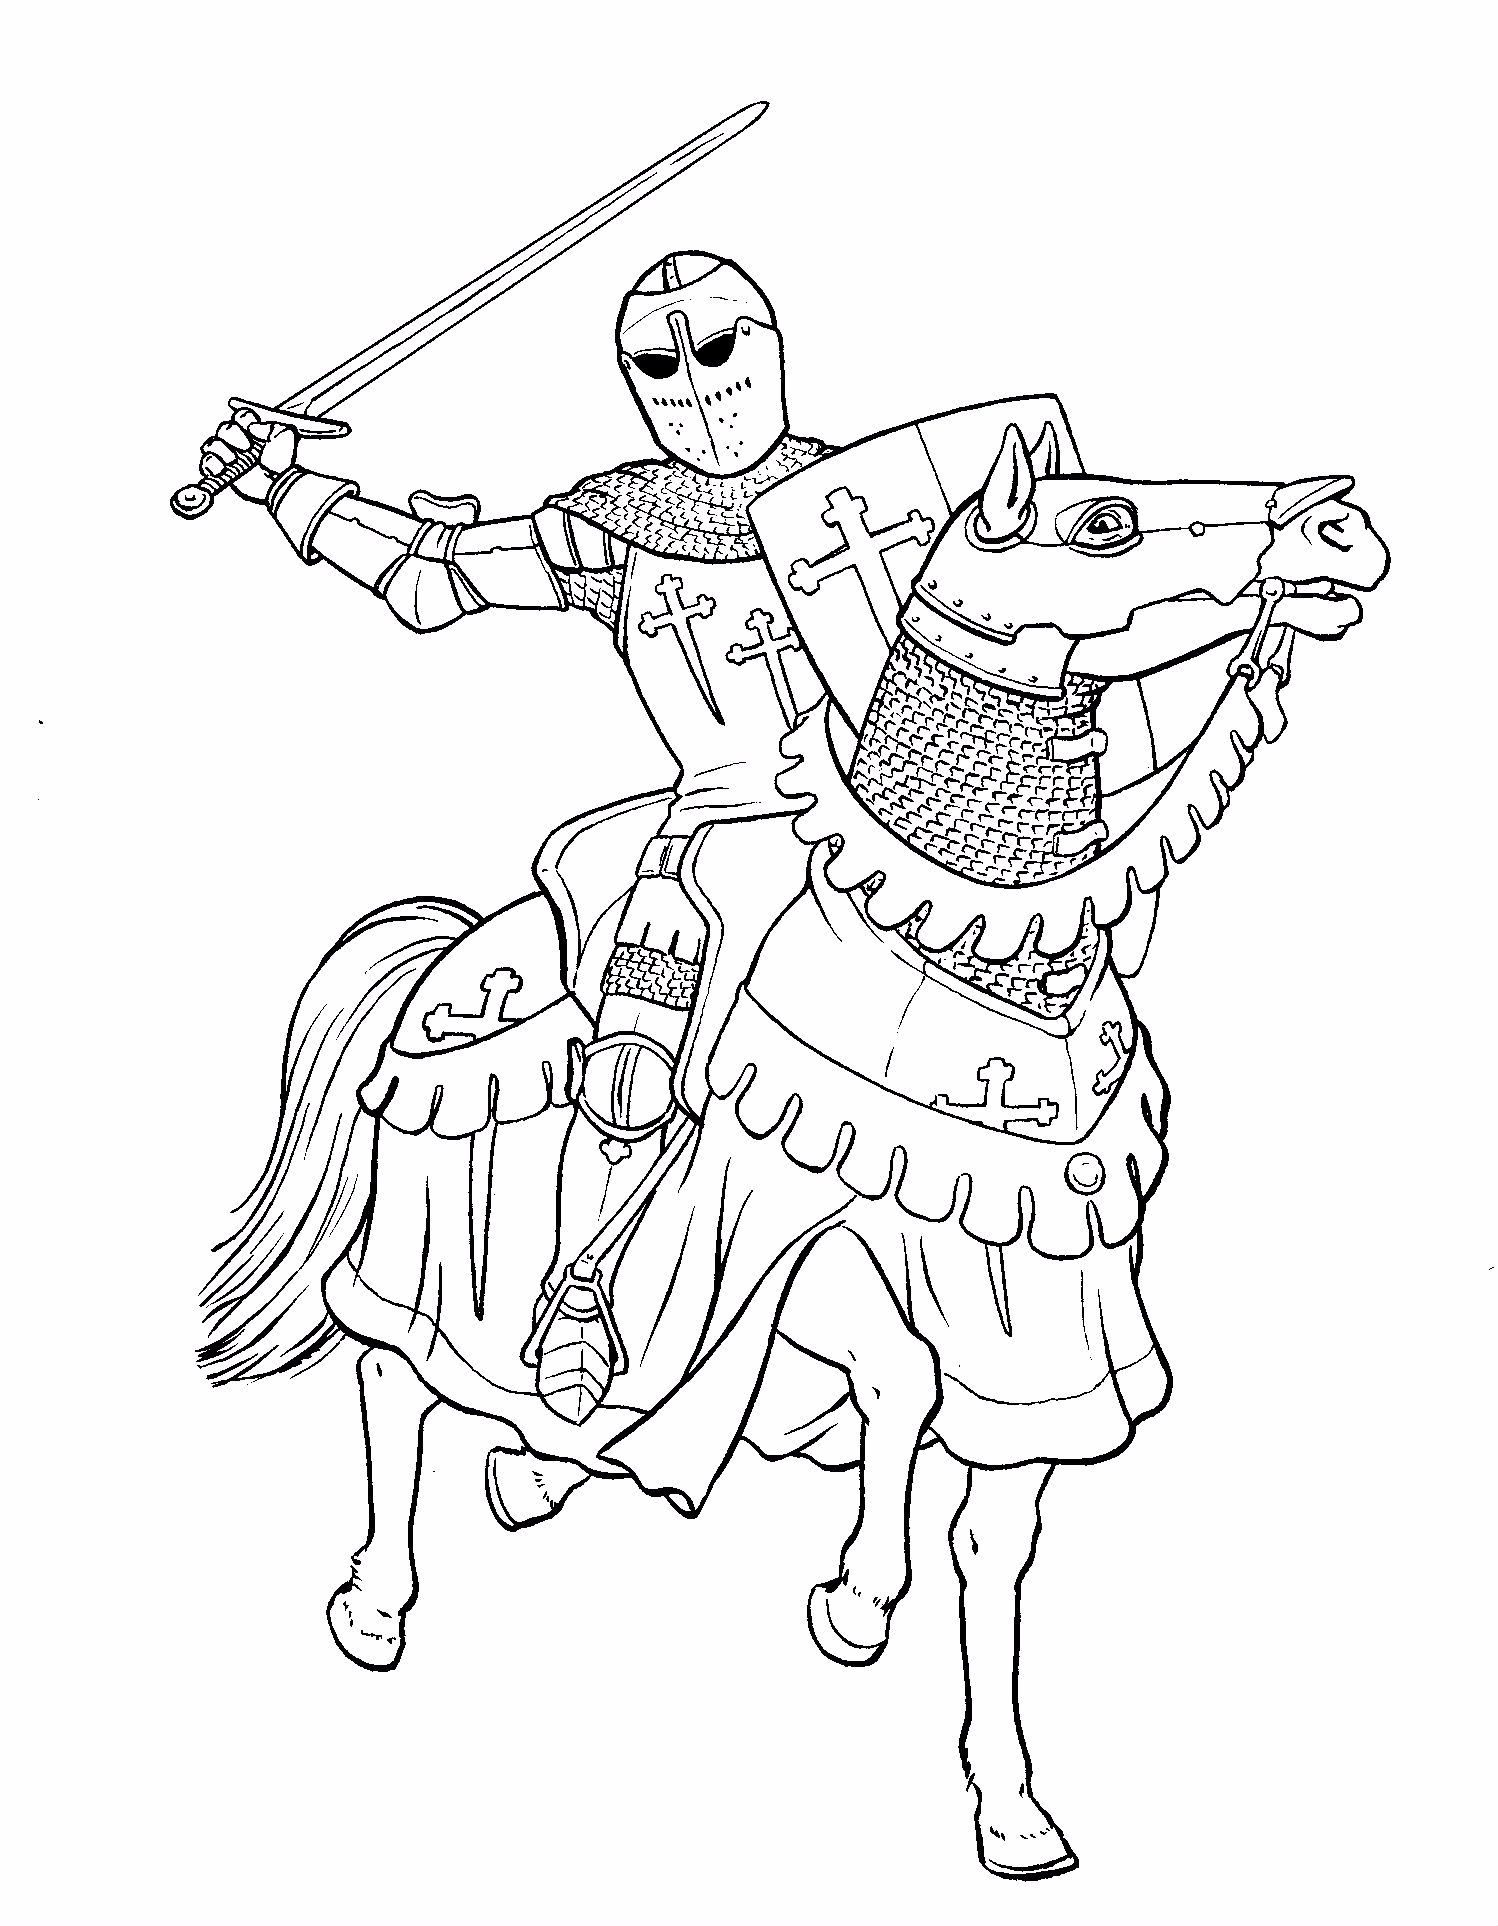 Online Coloring Pages Coloring Pages For Kids Coloring Online Coloring Pages Horse Coloring Pages Coloring Pages